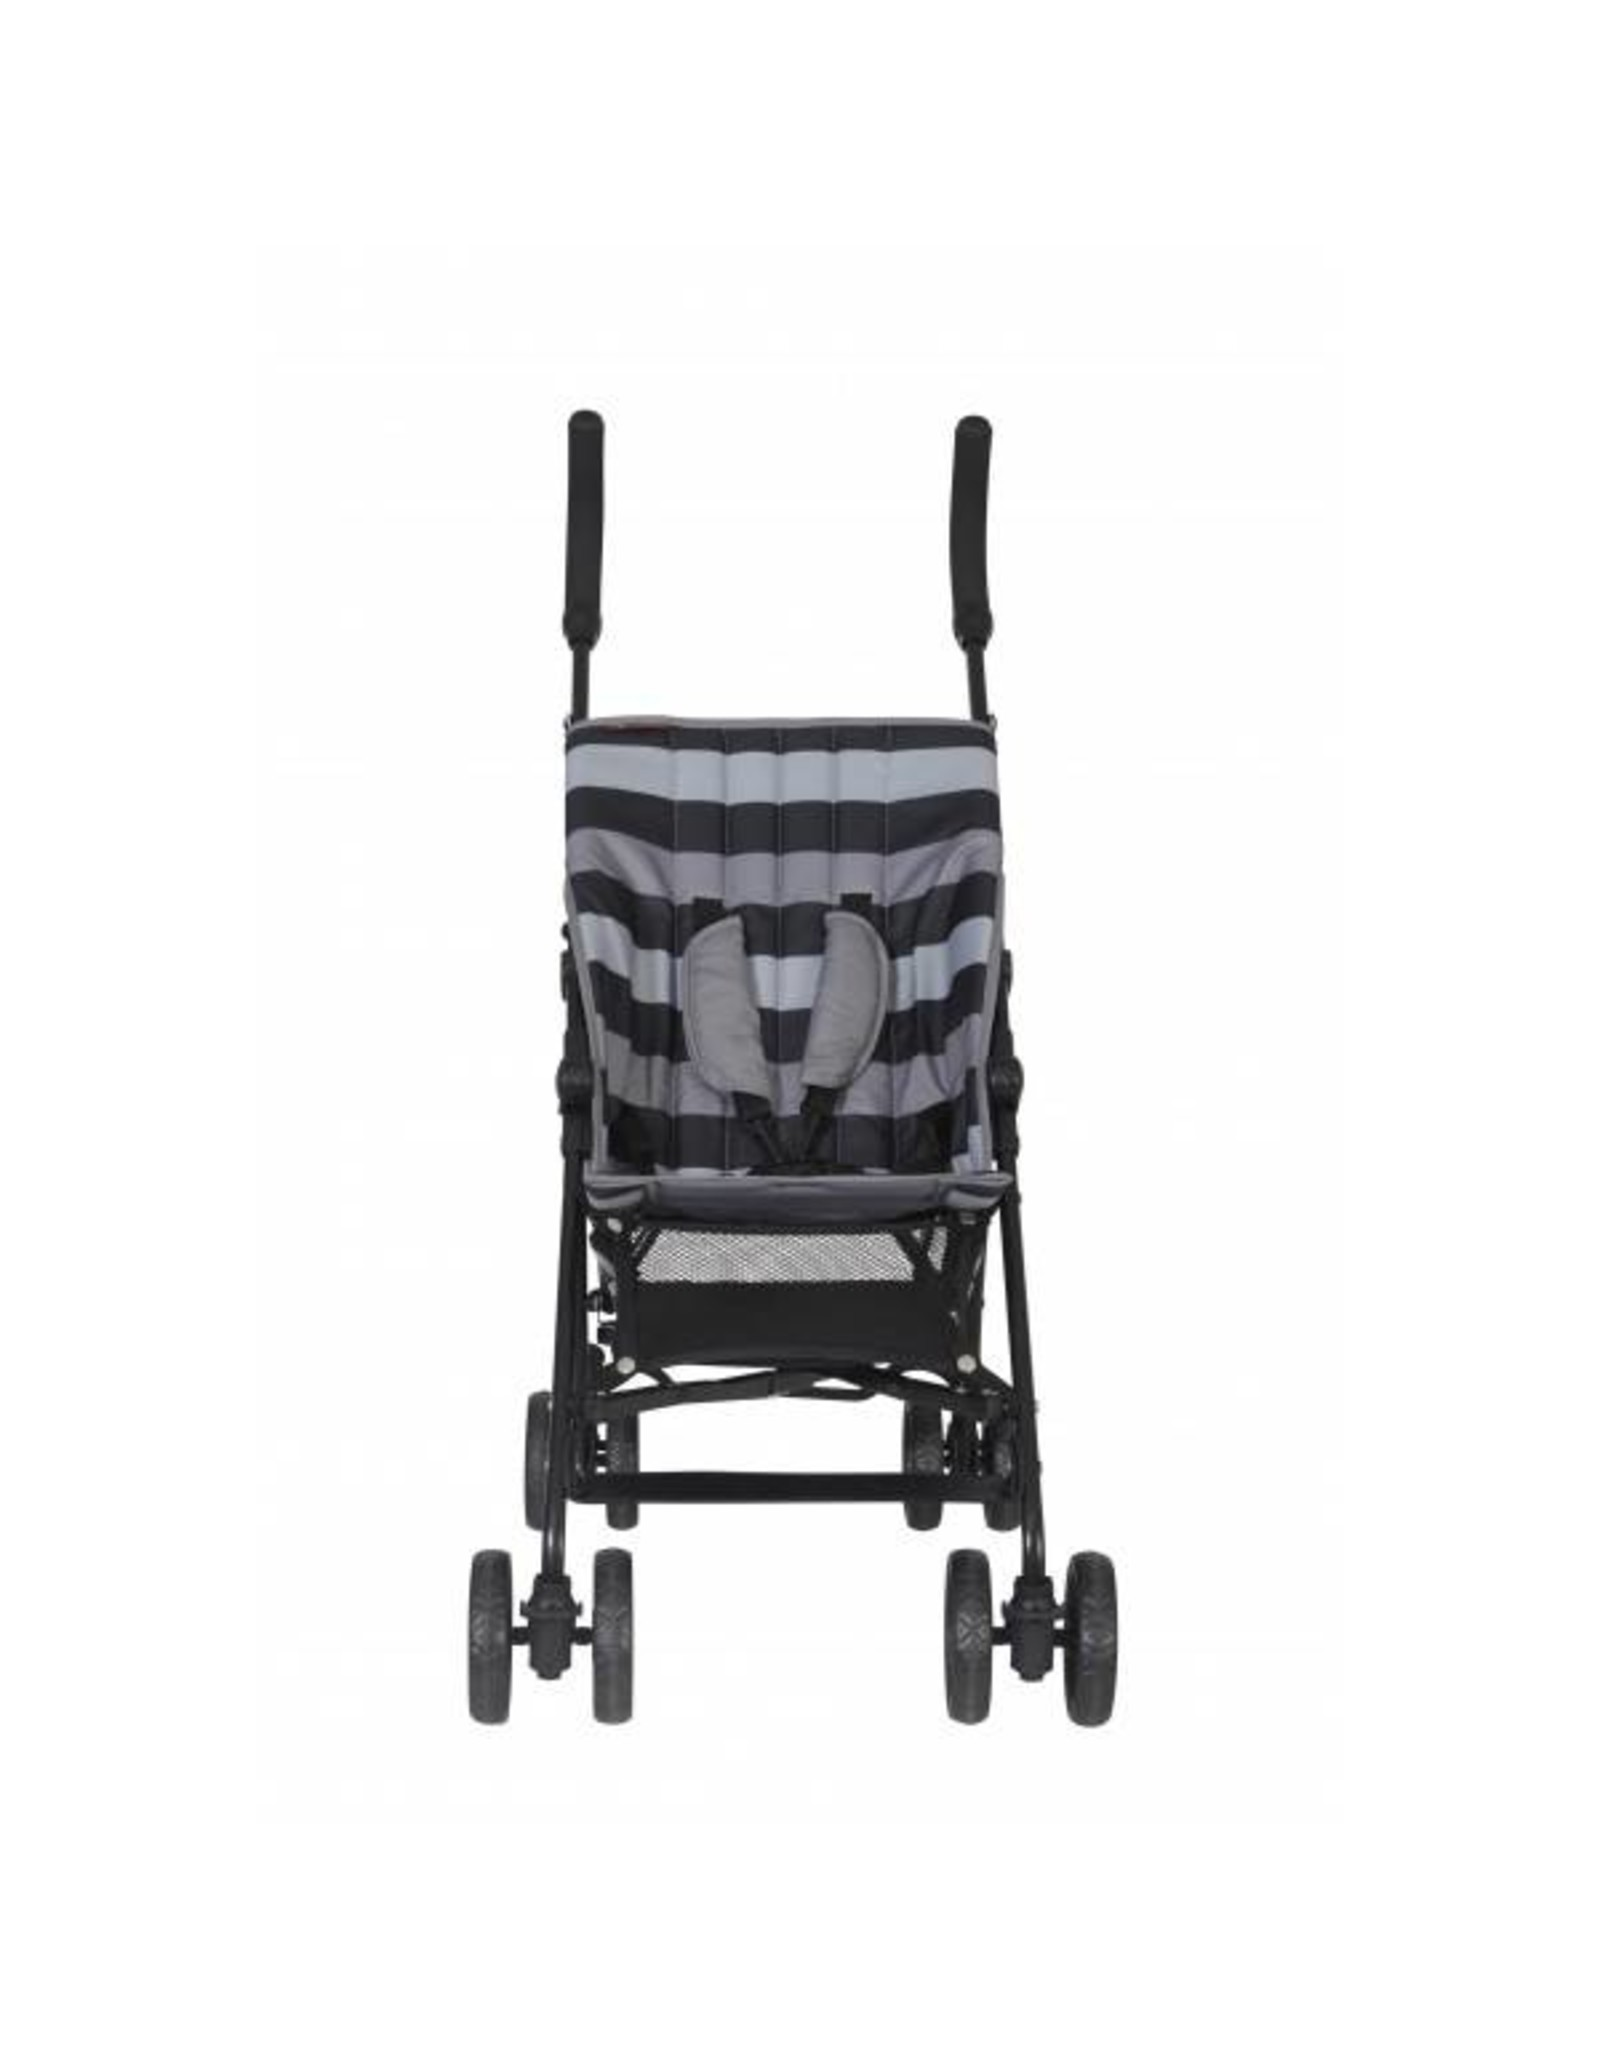 Topmark Buggy Rio 1 stand buggy